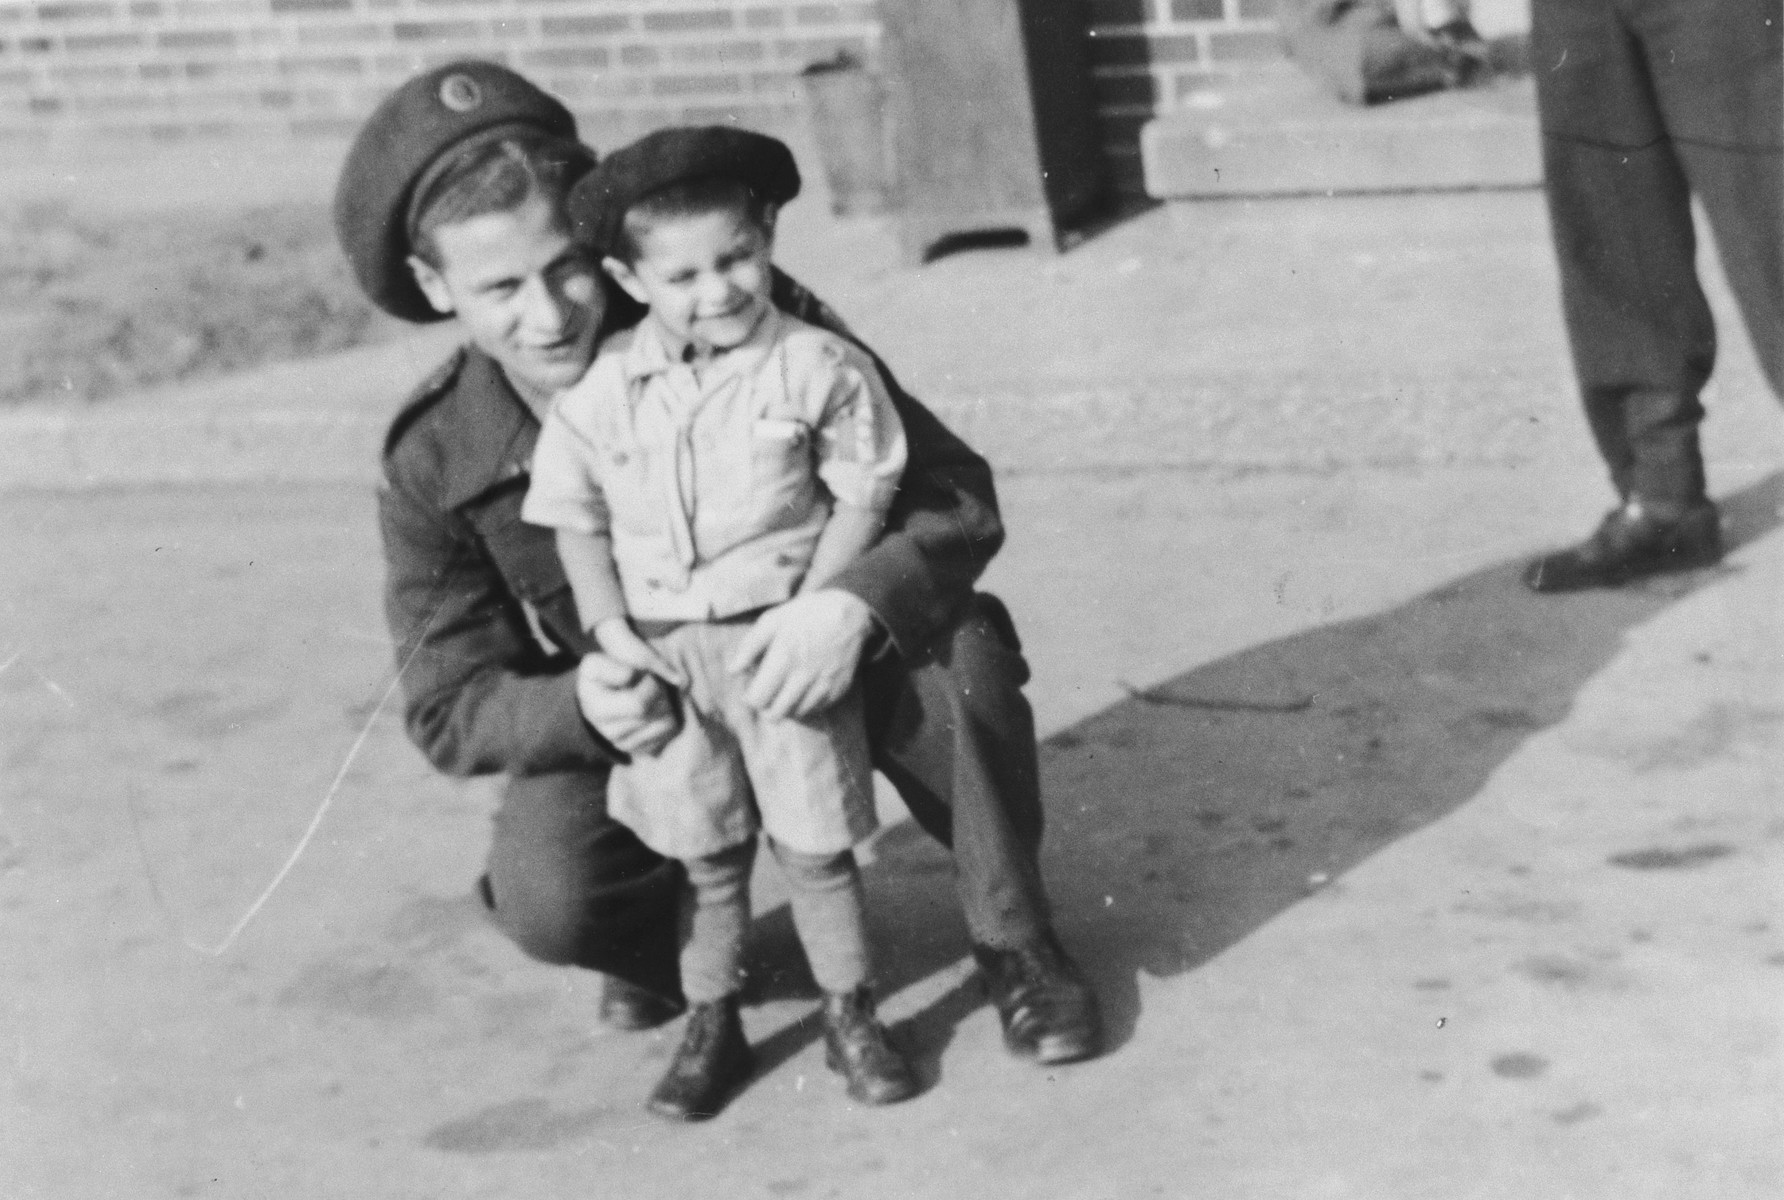 Jacob Zajac, a soldier in the Jewish Brigade, poses with a very young survivor in the Bergen-Belsen concentration camp.